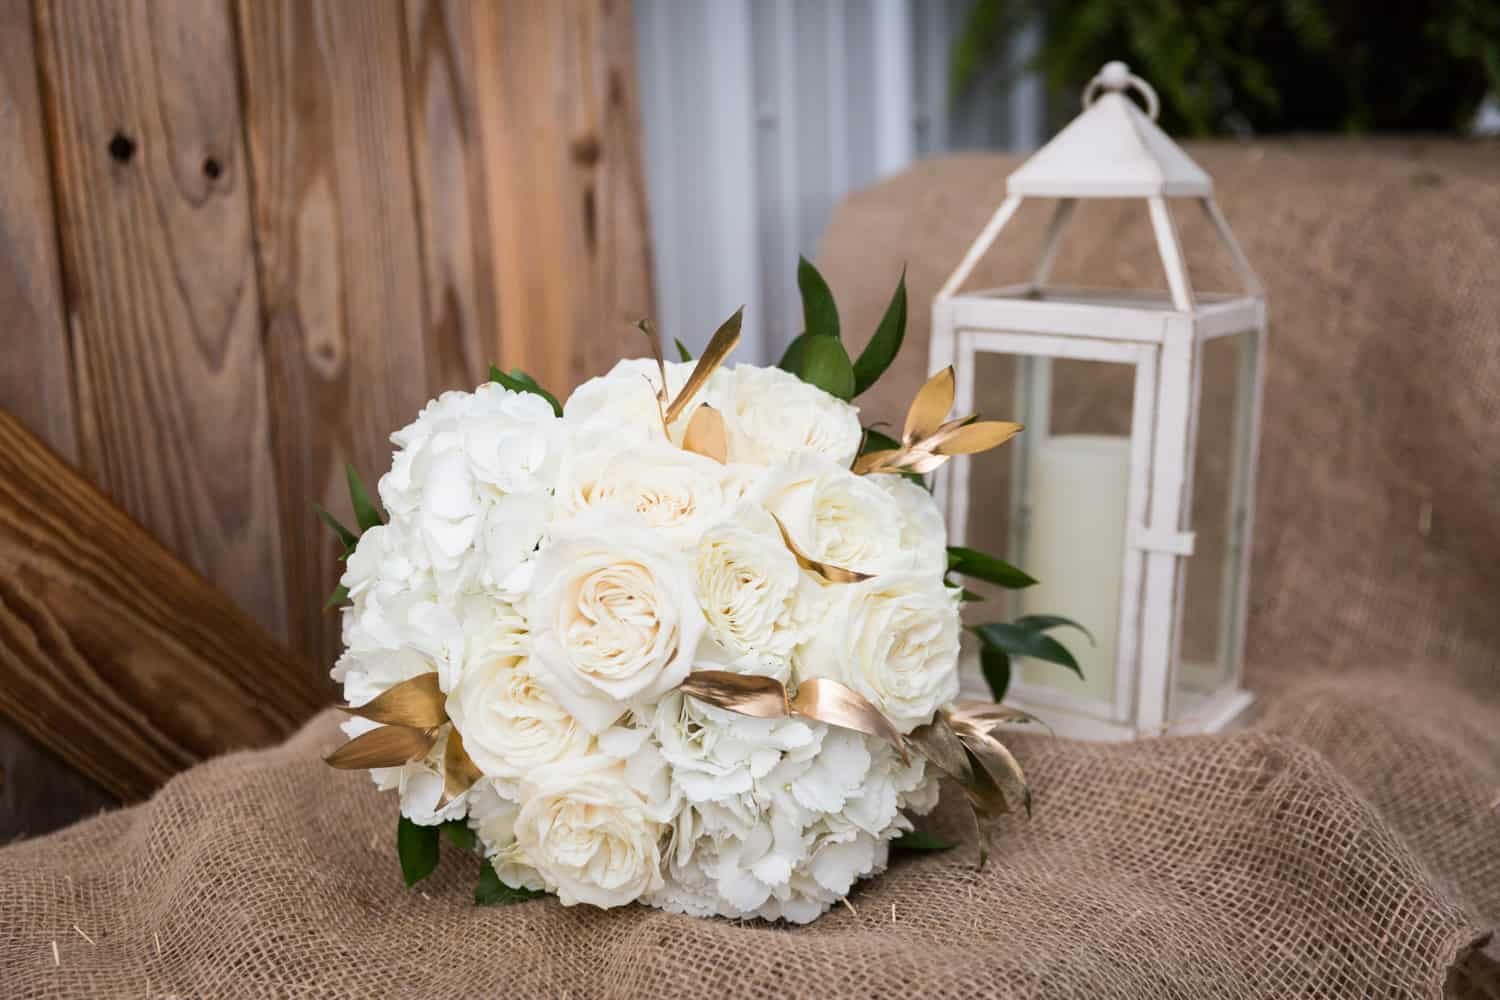 Bridal bouquet of white roses for an article on wedding cost cutting tips